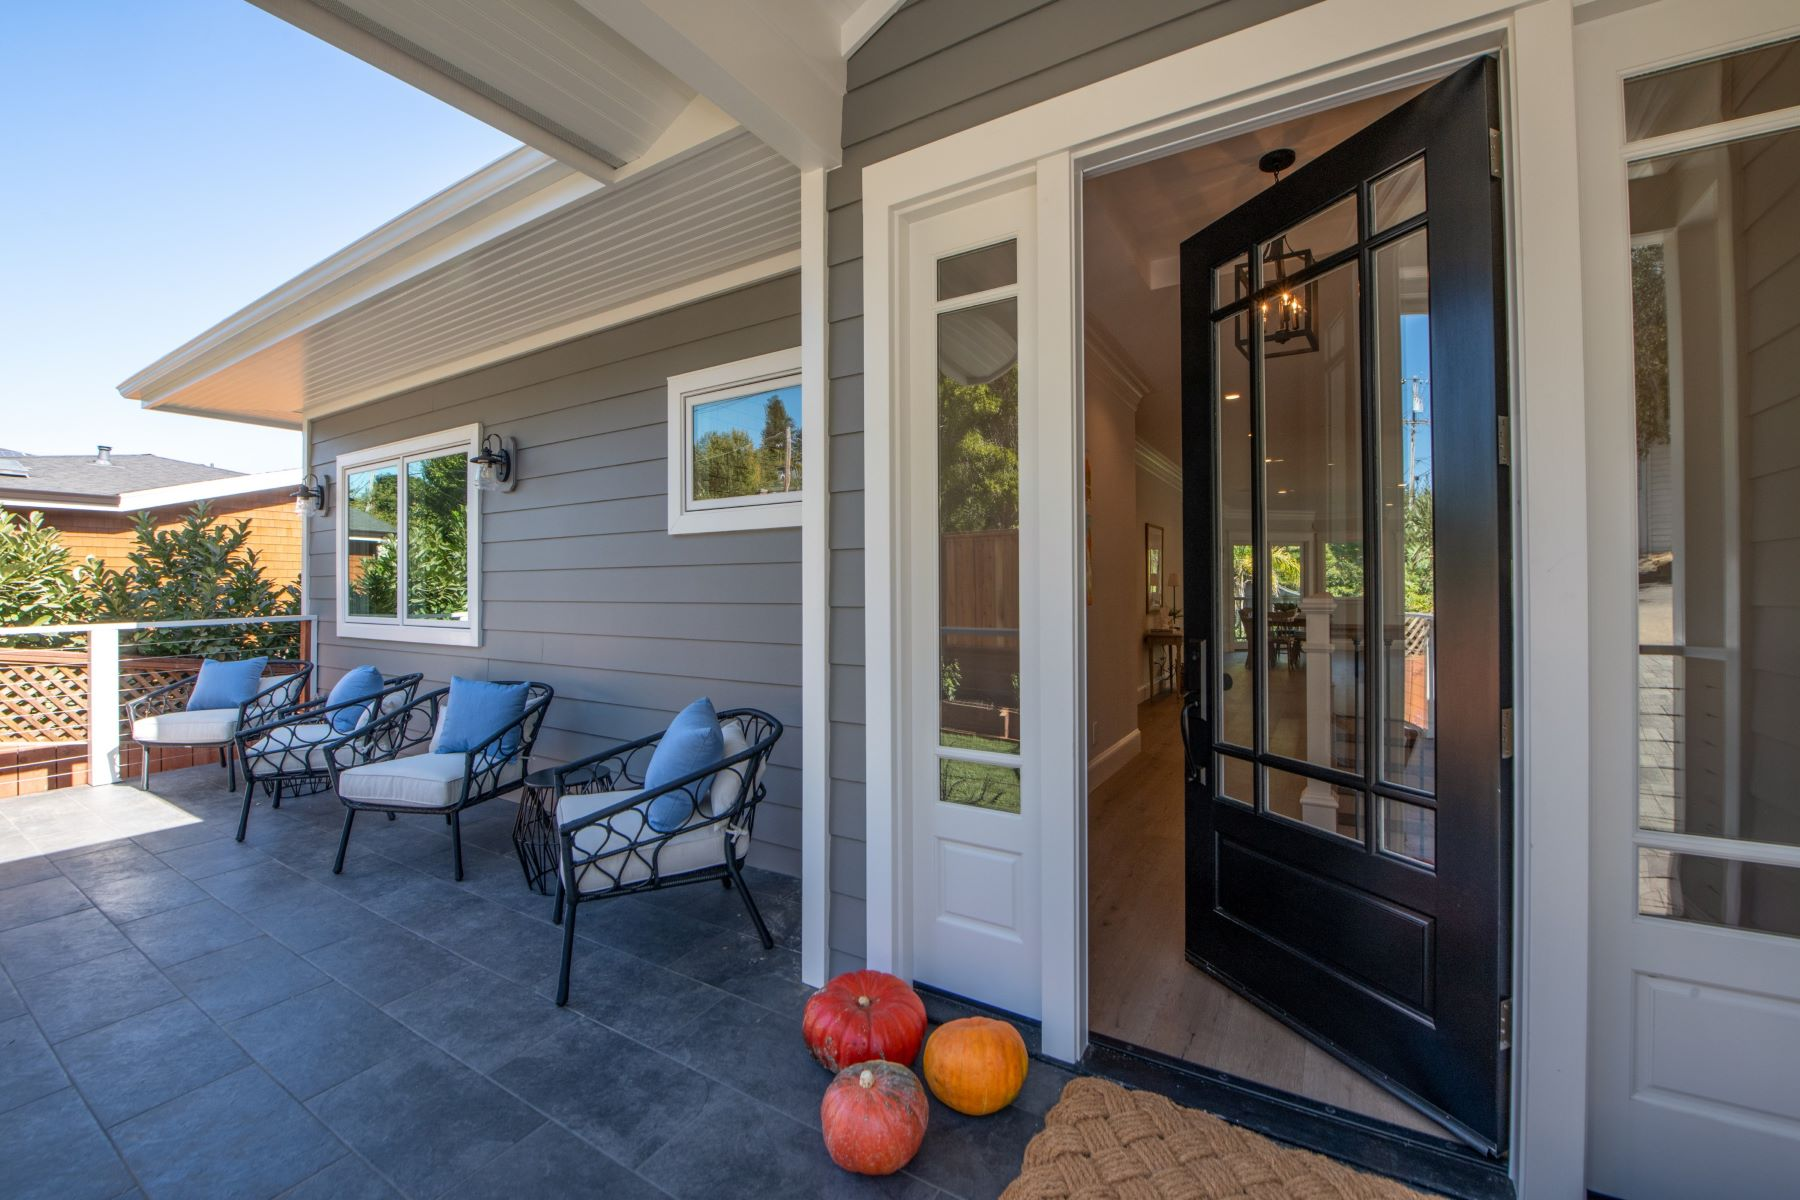 Single Family Homes for Sale at Just Completed Farm House 122 Grove Avenue Corte Madera, California 94925 United States